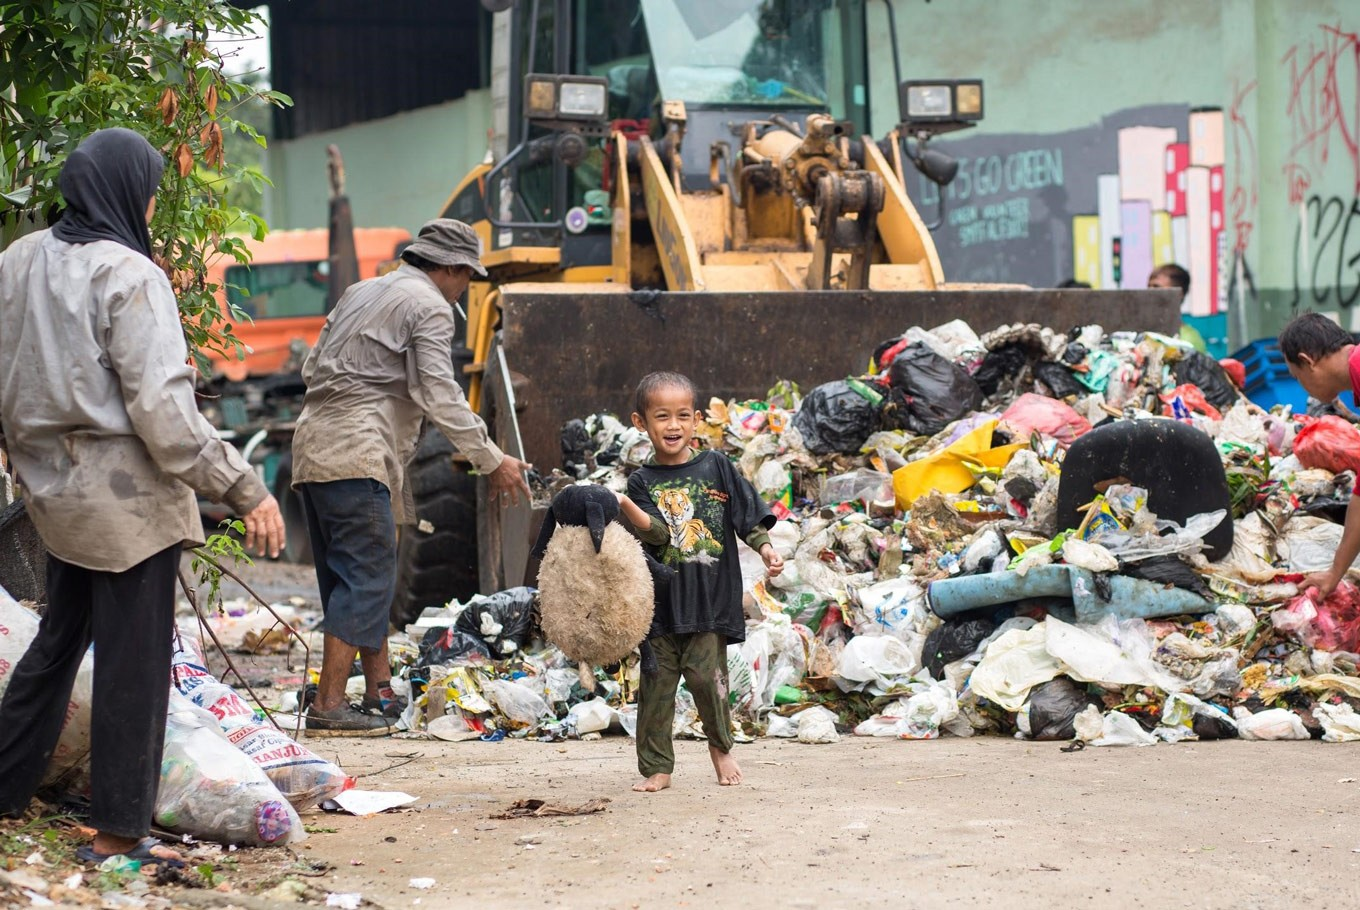 Depok: The front line in Indonesia's fight against waste